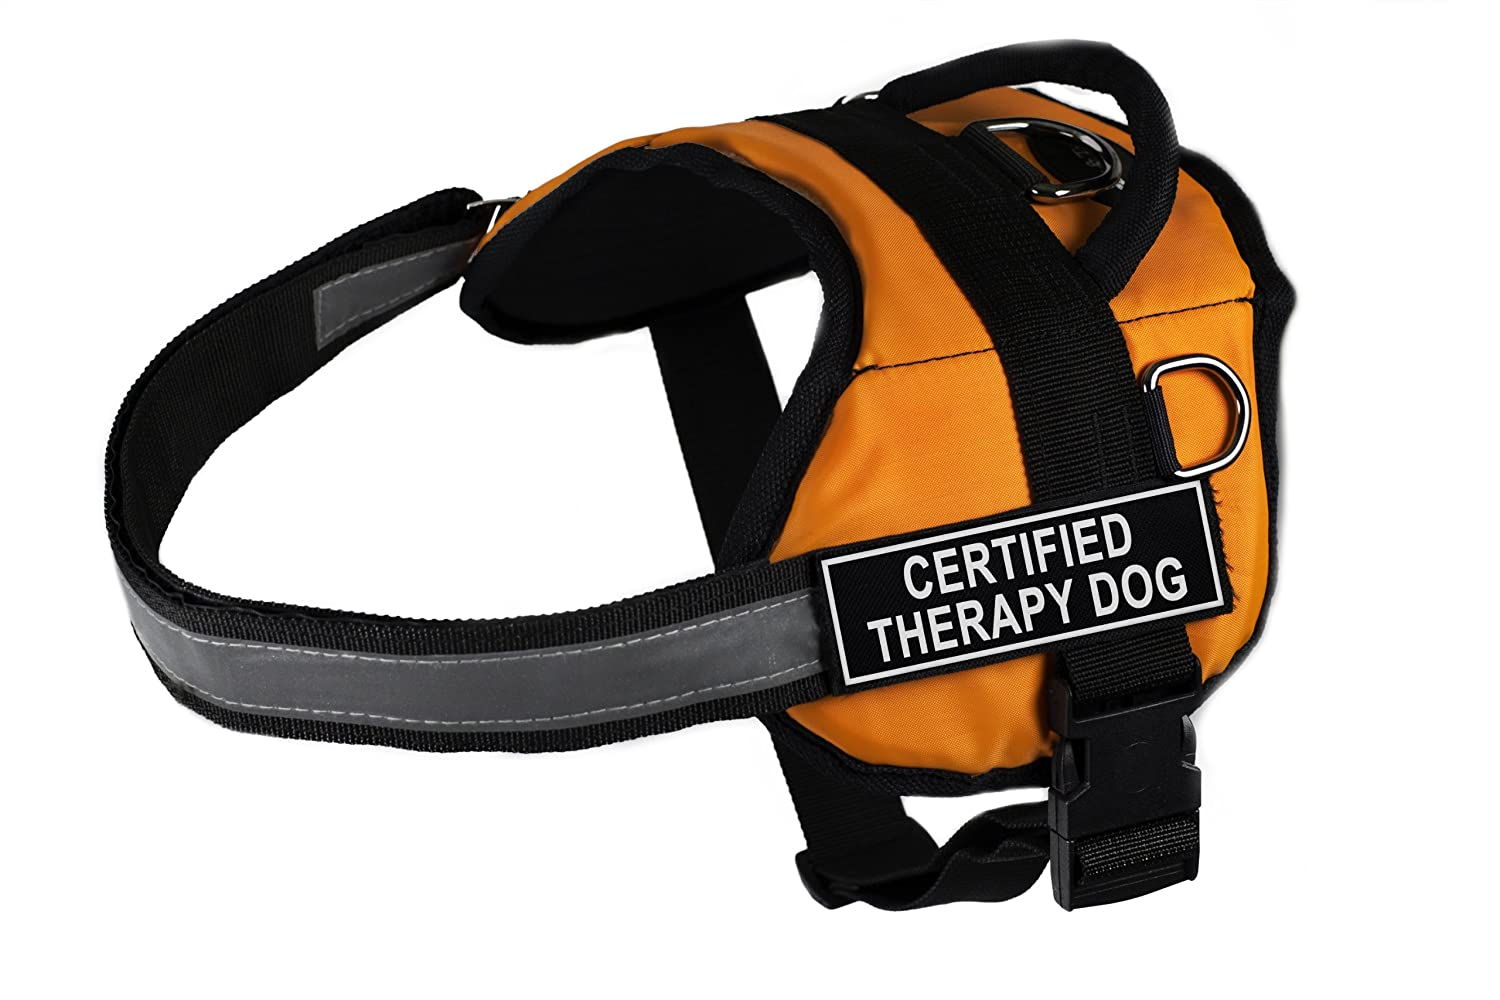 Dean & Tyler DT Works Certified Therapy Dog Dog Harness, Fits Girth Size 34-Inch to 47-Inch, Large, orange Black